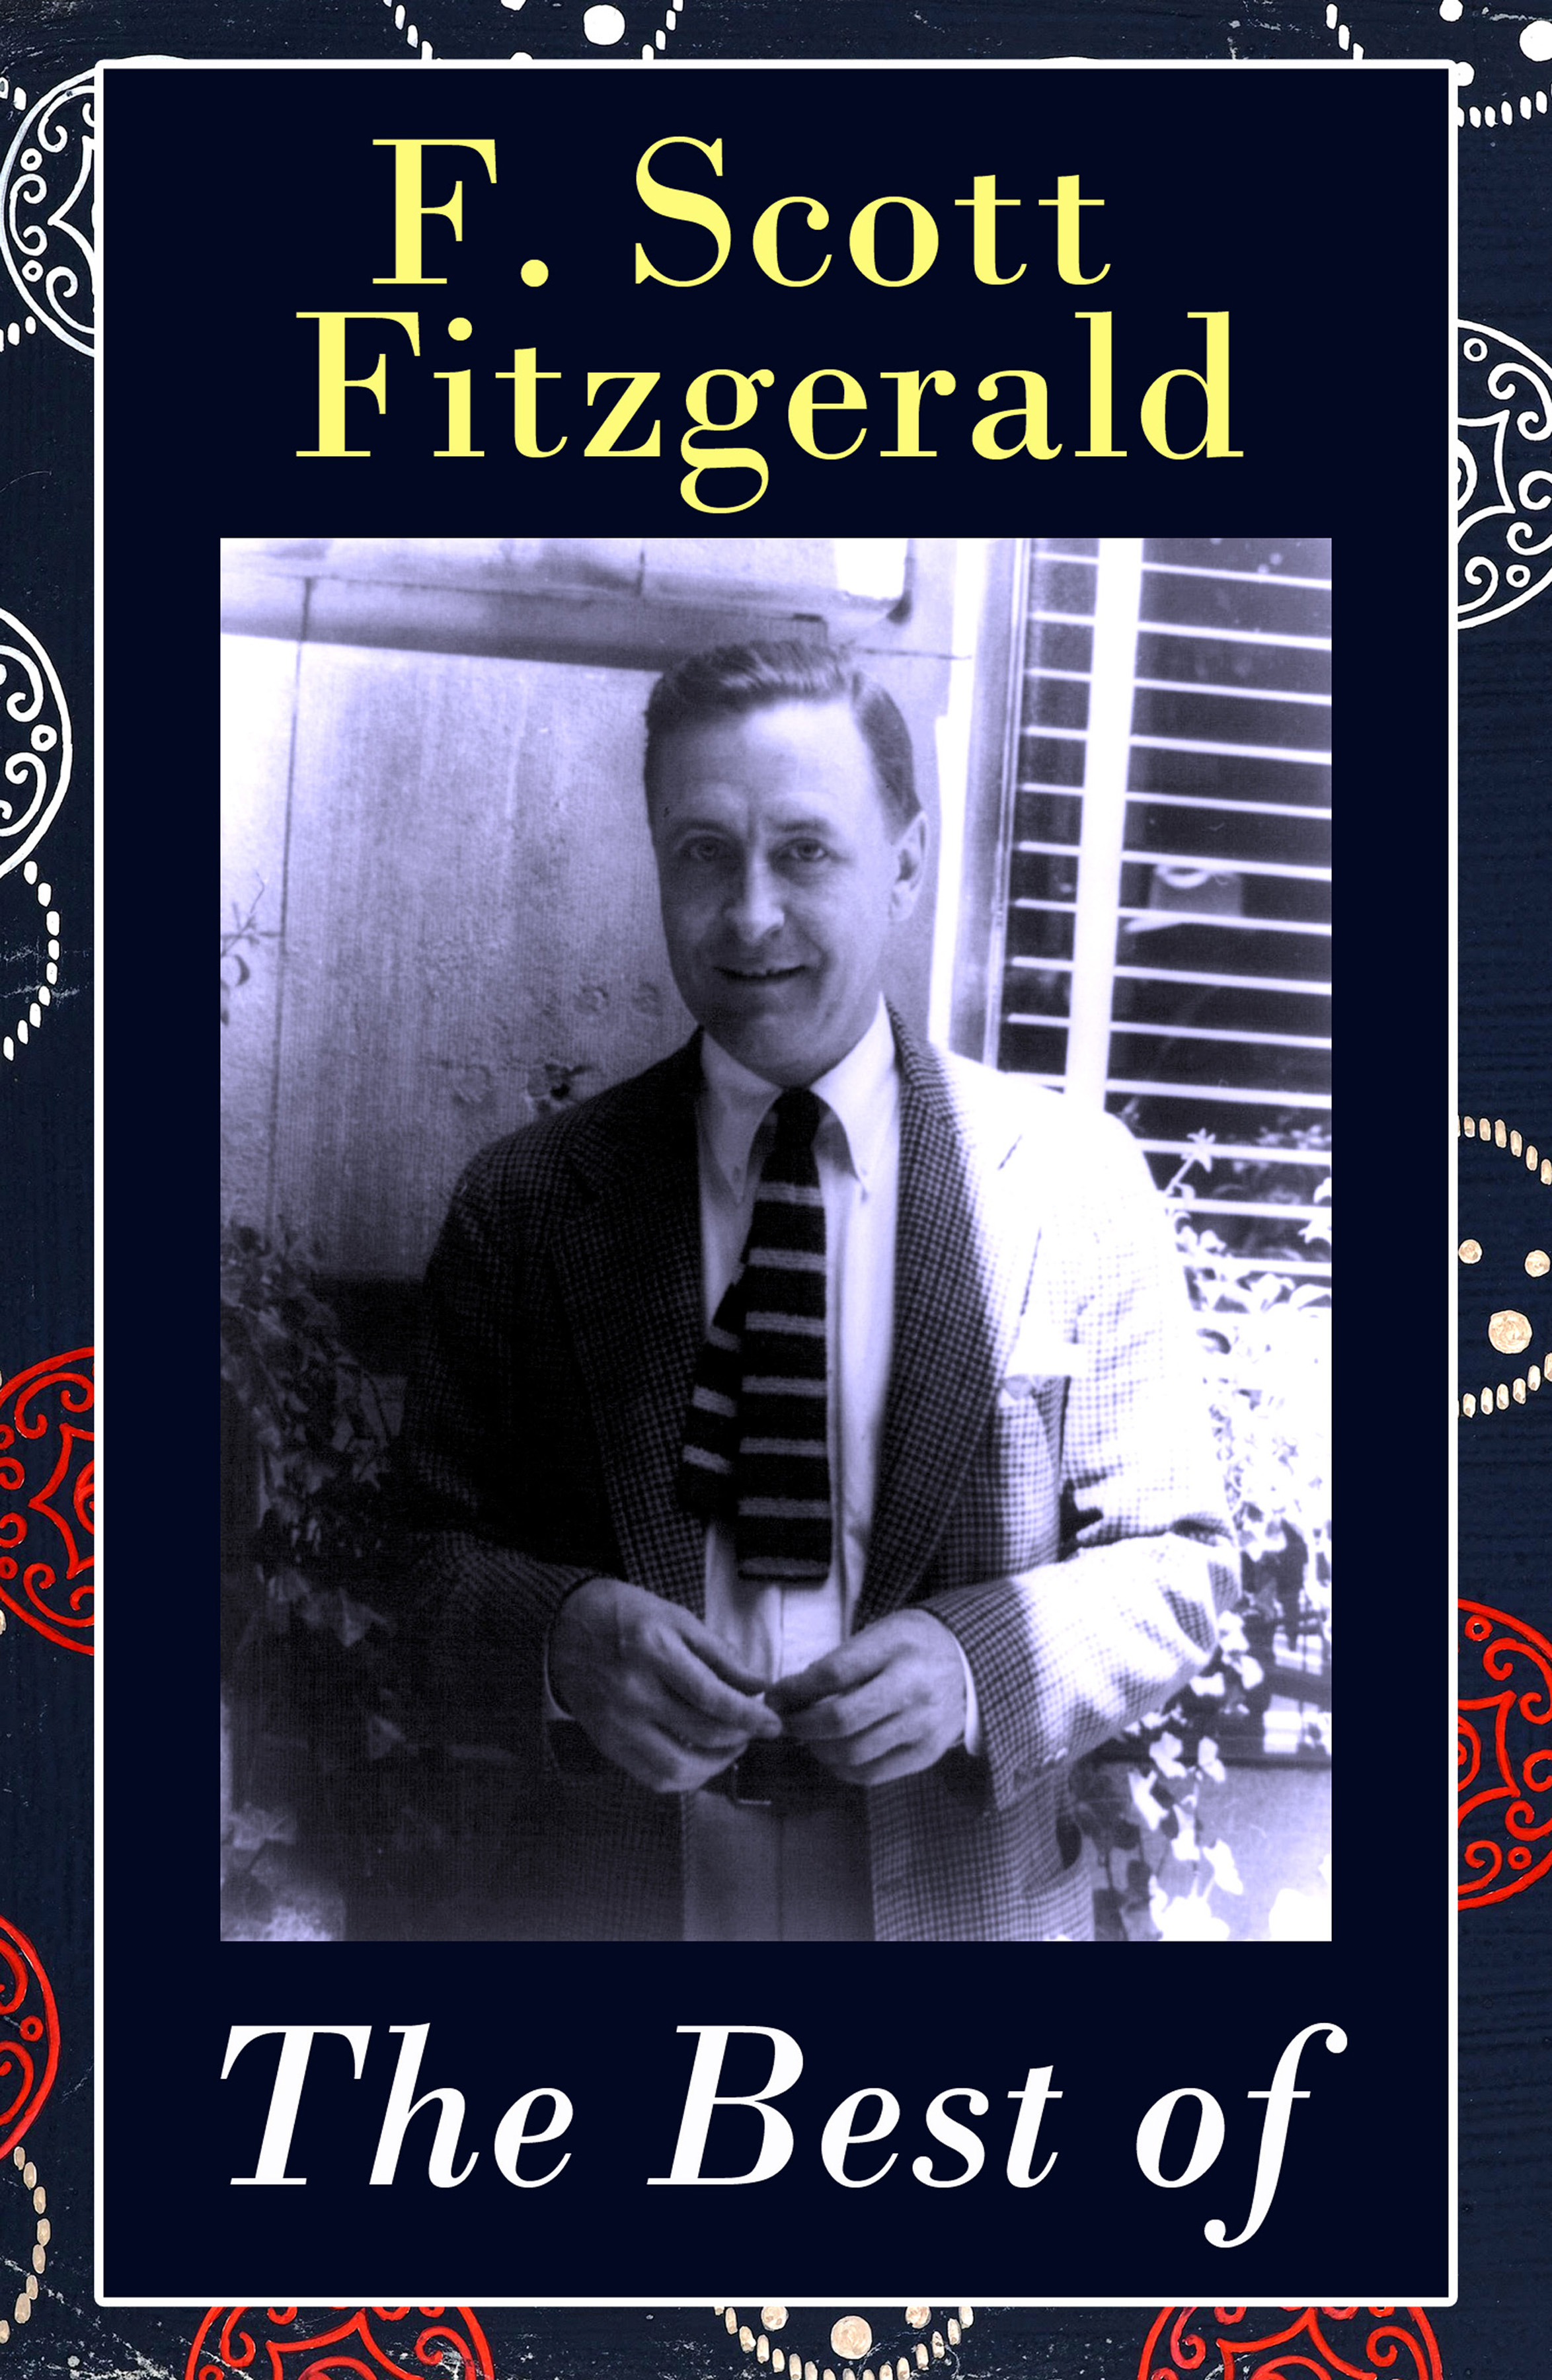 Francis Scott Fitzgerald The Best of F. Scott Fitzgerald: The Great Gatsby + Tender Is the Night + This Side of Paradise + The Beautiful and Damned + The 13 Most Notable Short Stories the circus of the damned